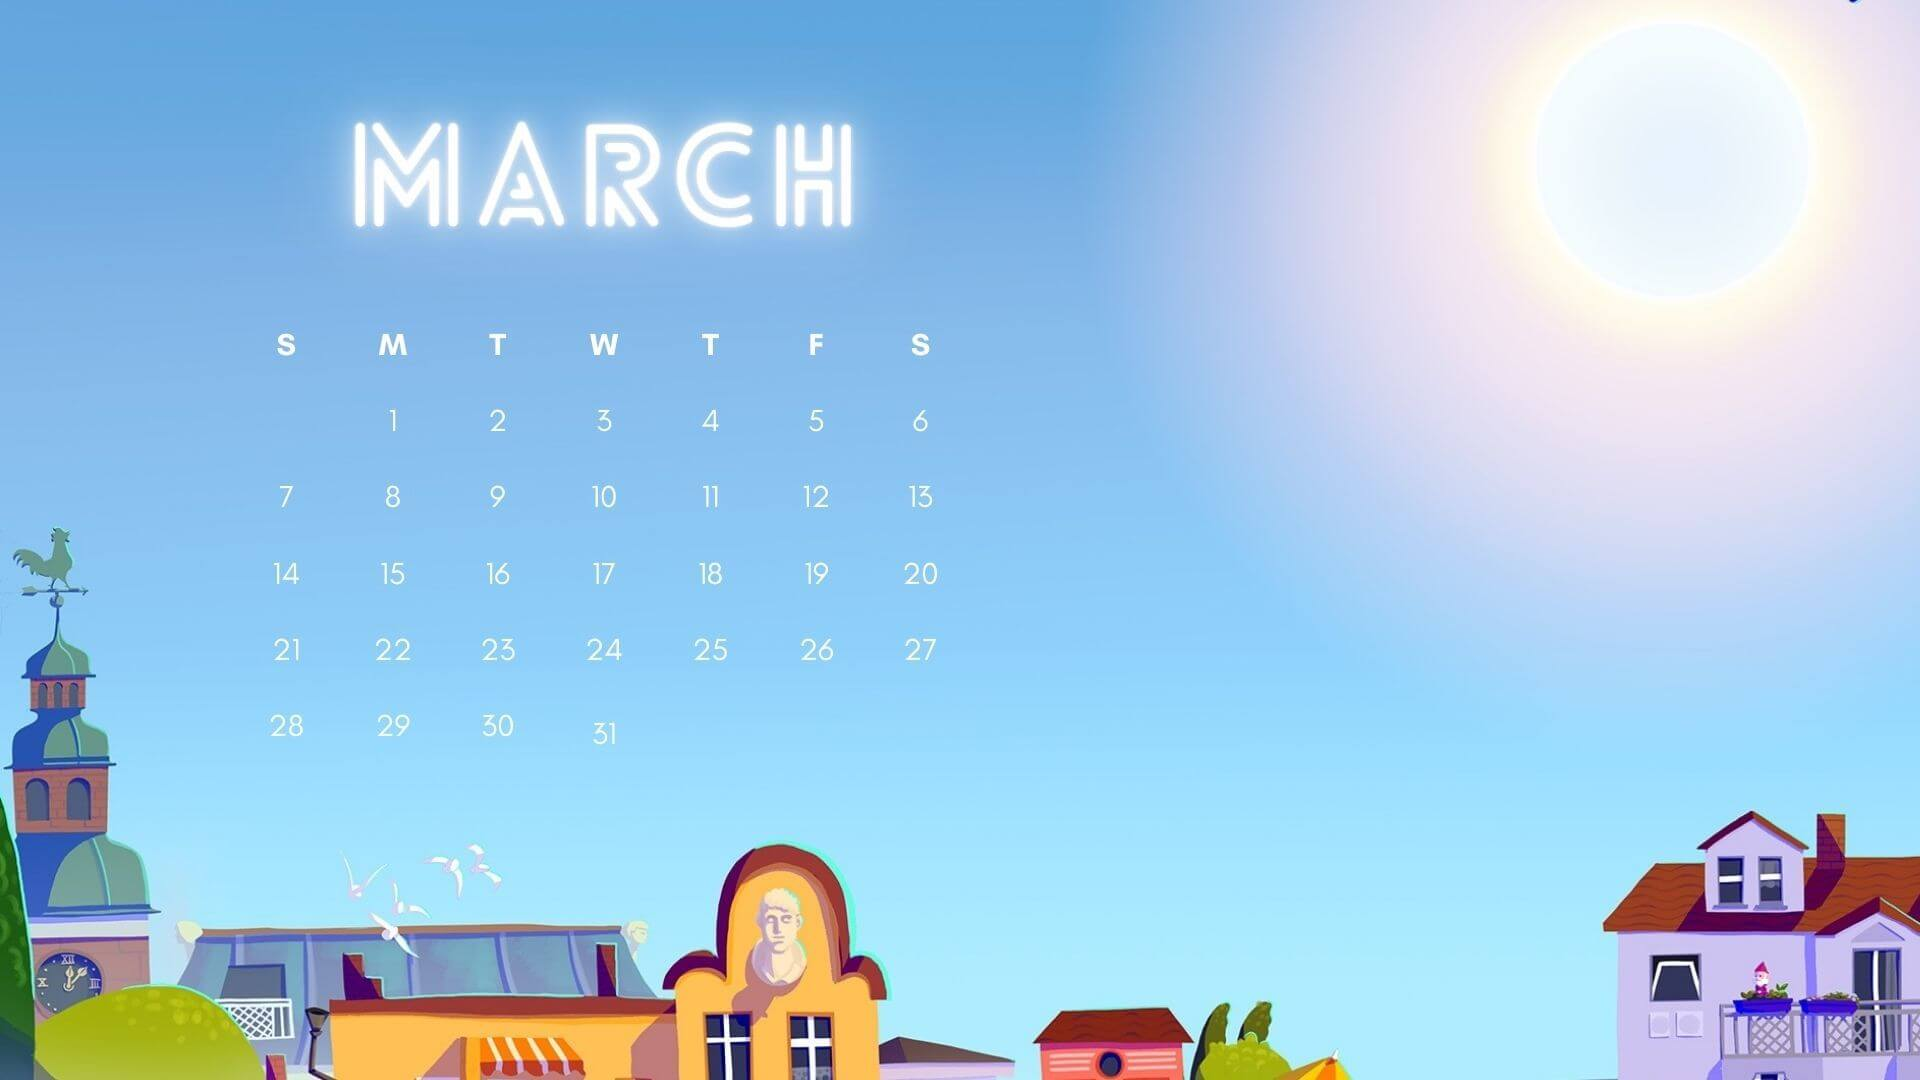 March 2021 Calendar Desktop Wallpaper